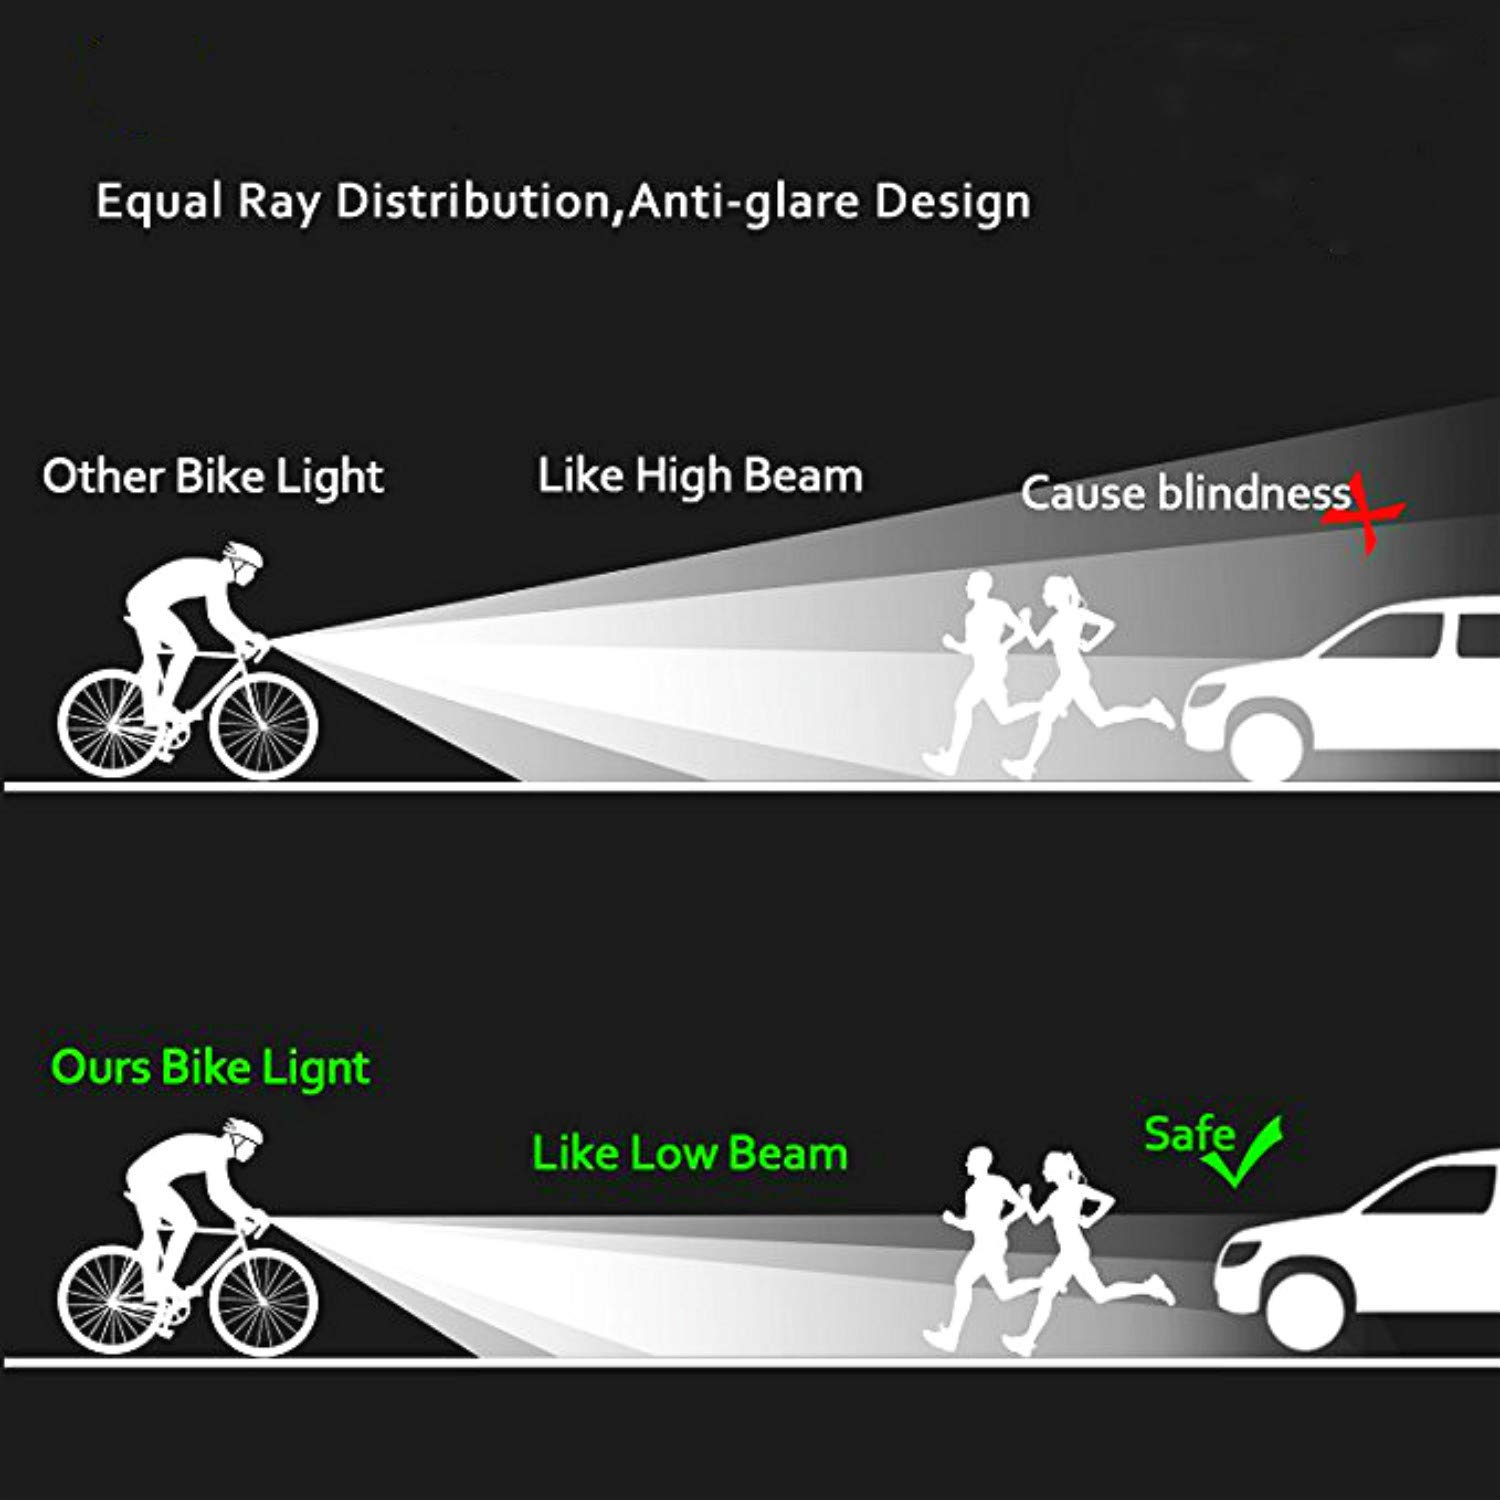 Yuwumin Smart Bike Light,USB Rechargeable Bicycle LED Lights,Super Bright  Headlight Water Resistant,Easy Install and Quick Release for Commuter Road